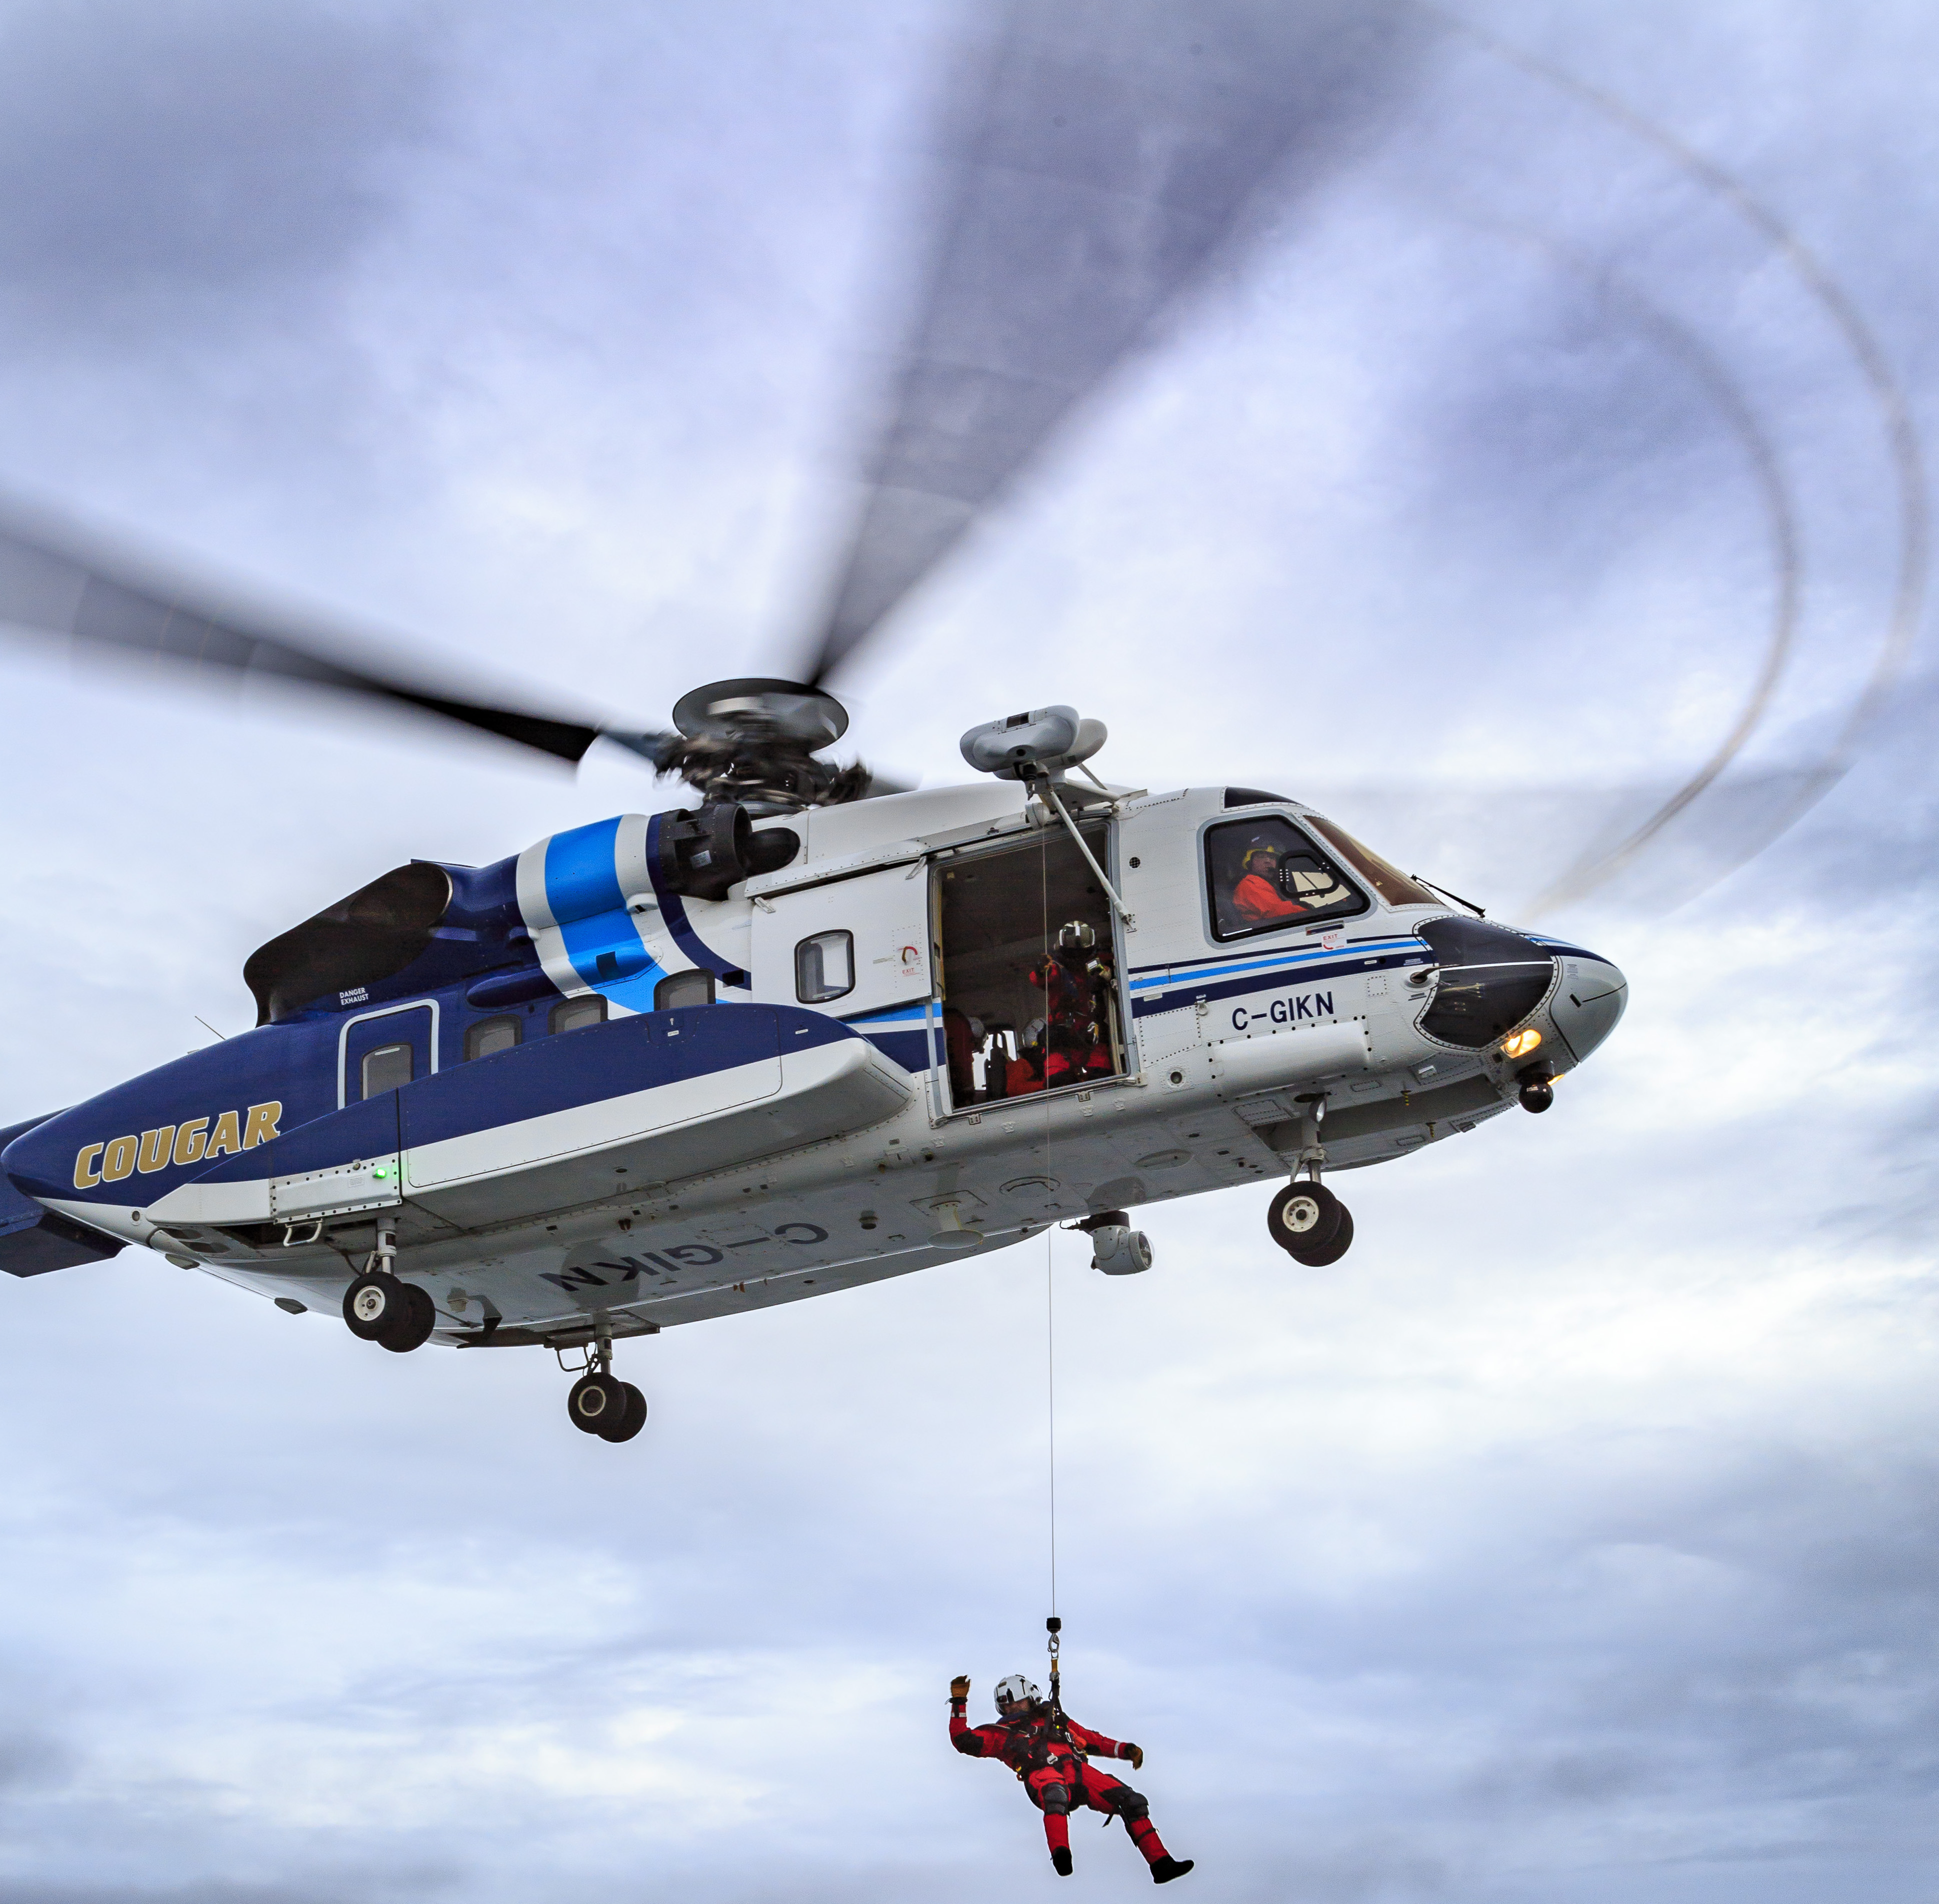 Cougar Sikorsky S-92 helicopter with rescue working hanging below it on longline